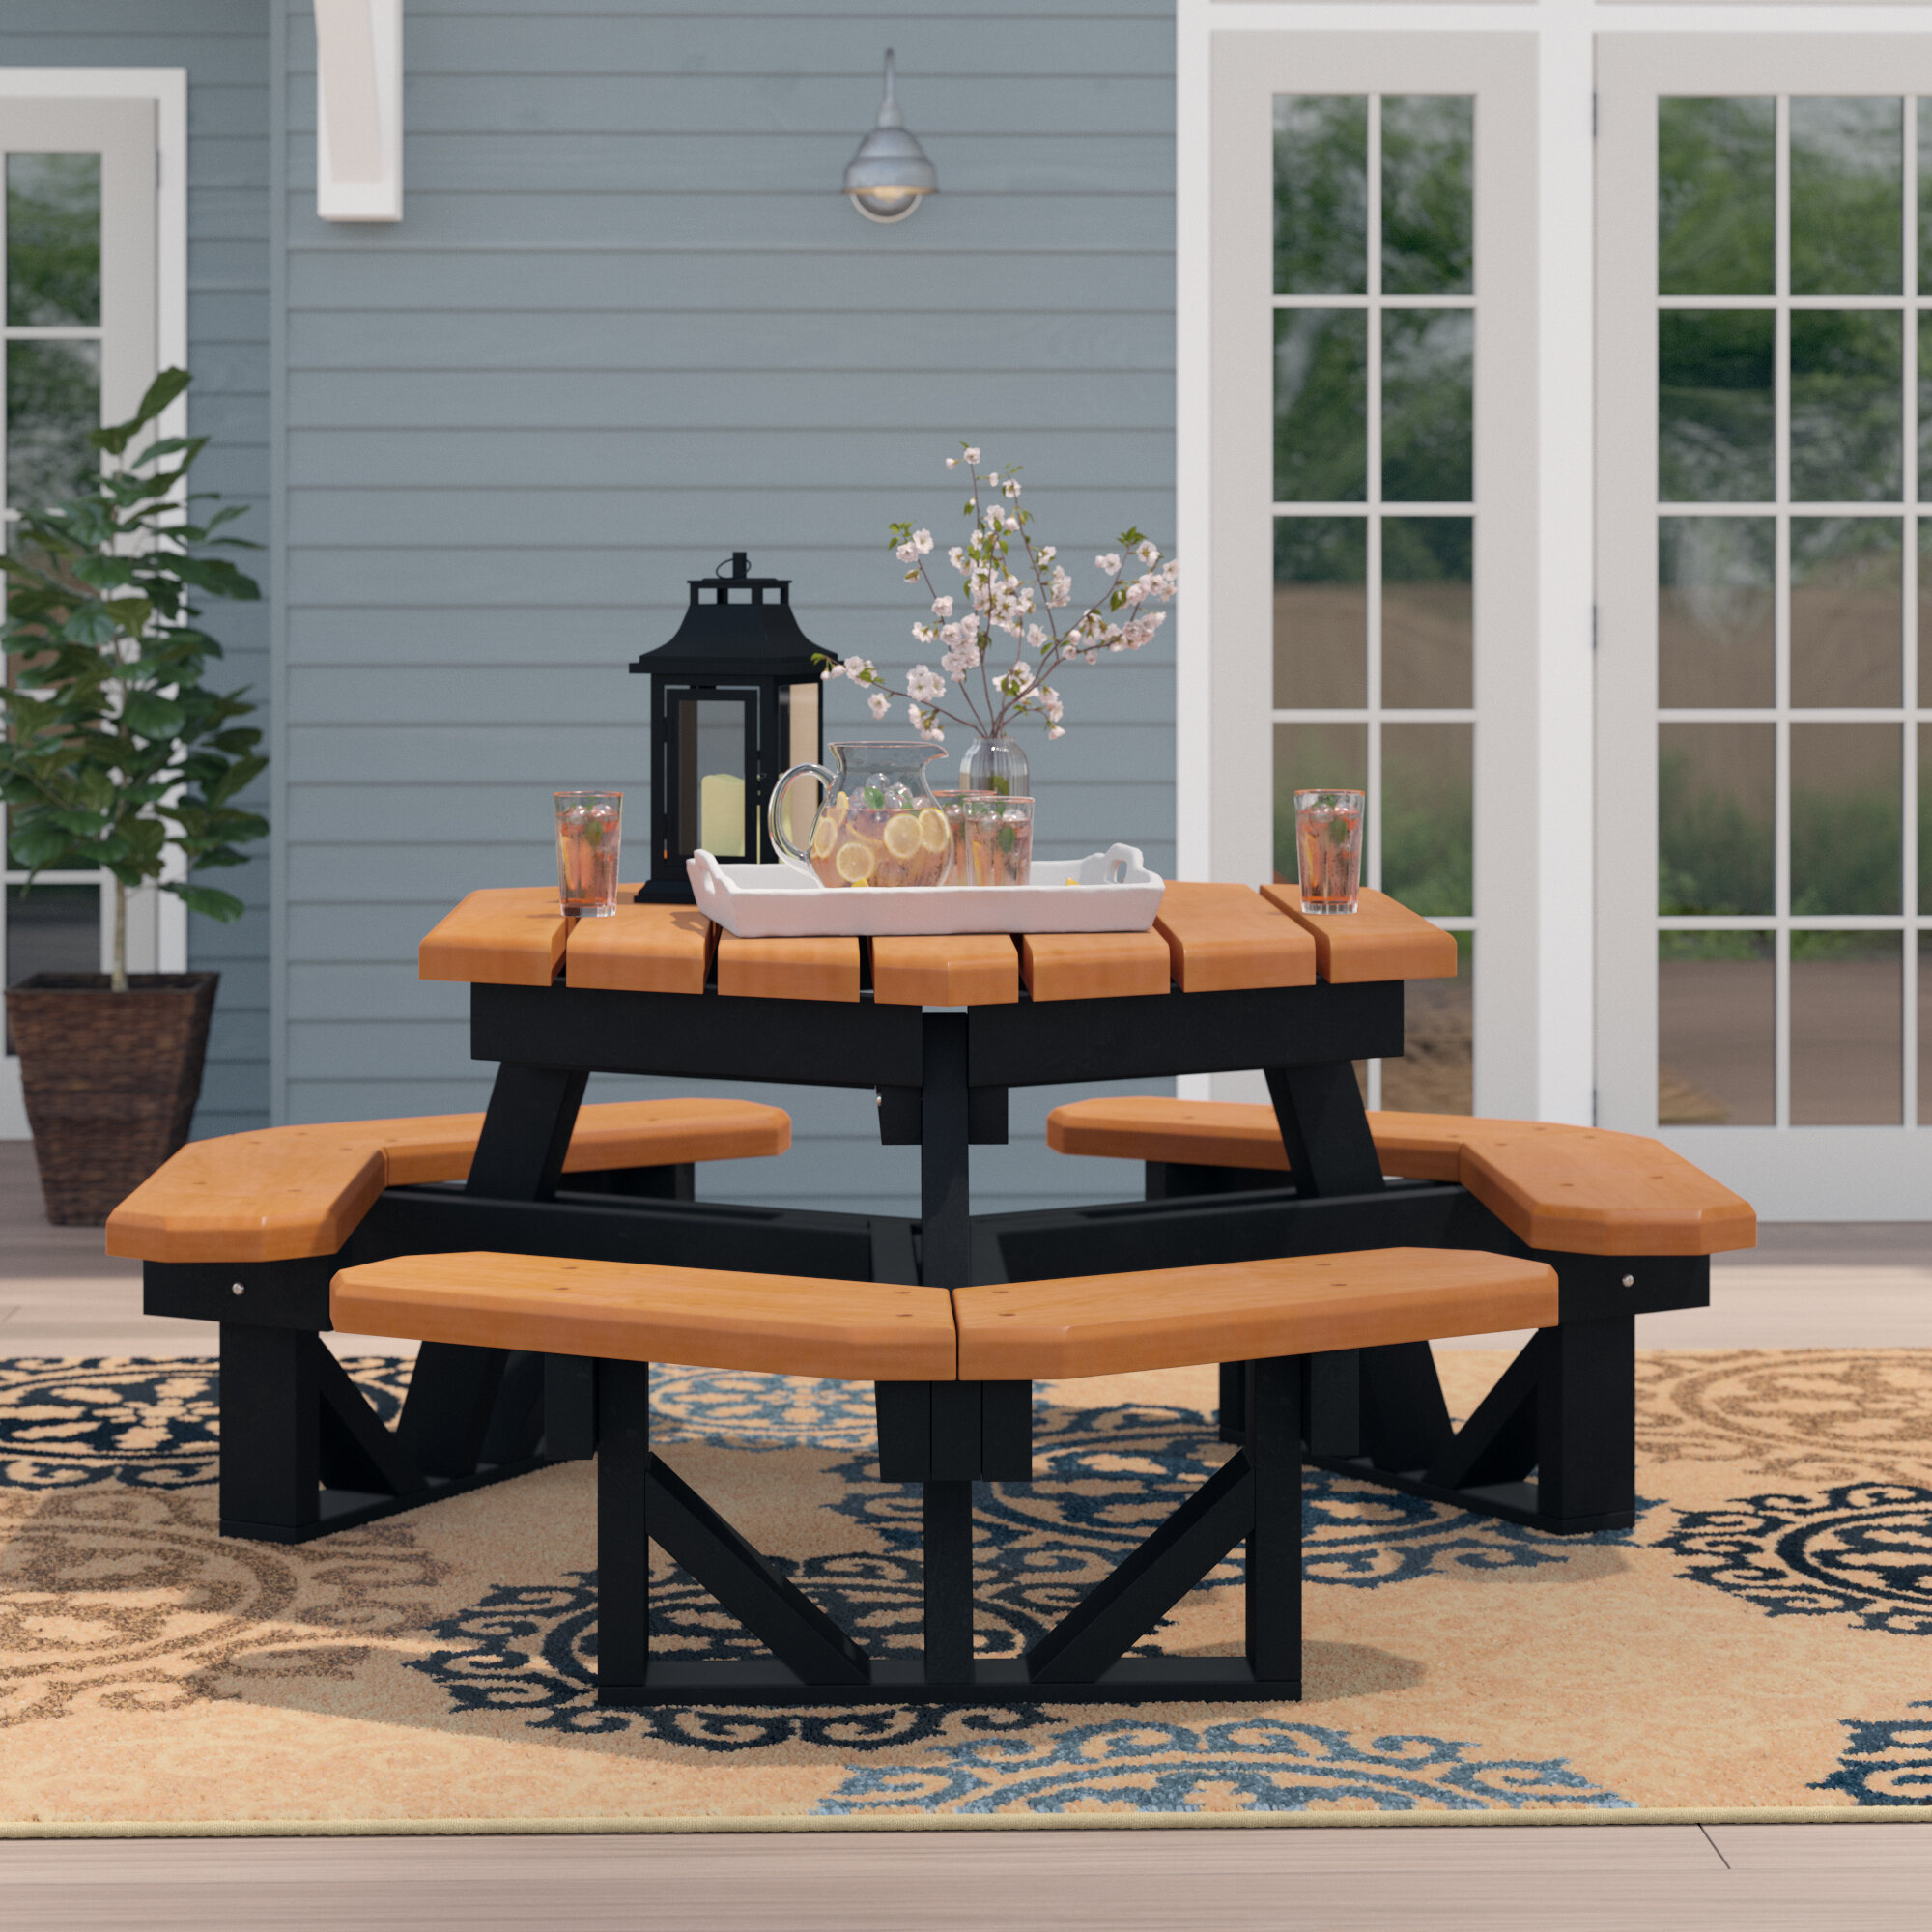 Excellent Picnic Umbrella Hole Patio Tables Youll Love In 2019 Wayfair Interior Design Ideas Gentotthenellocom